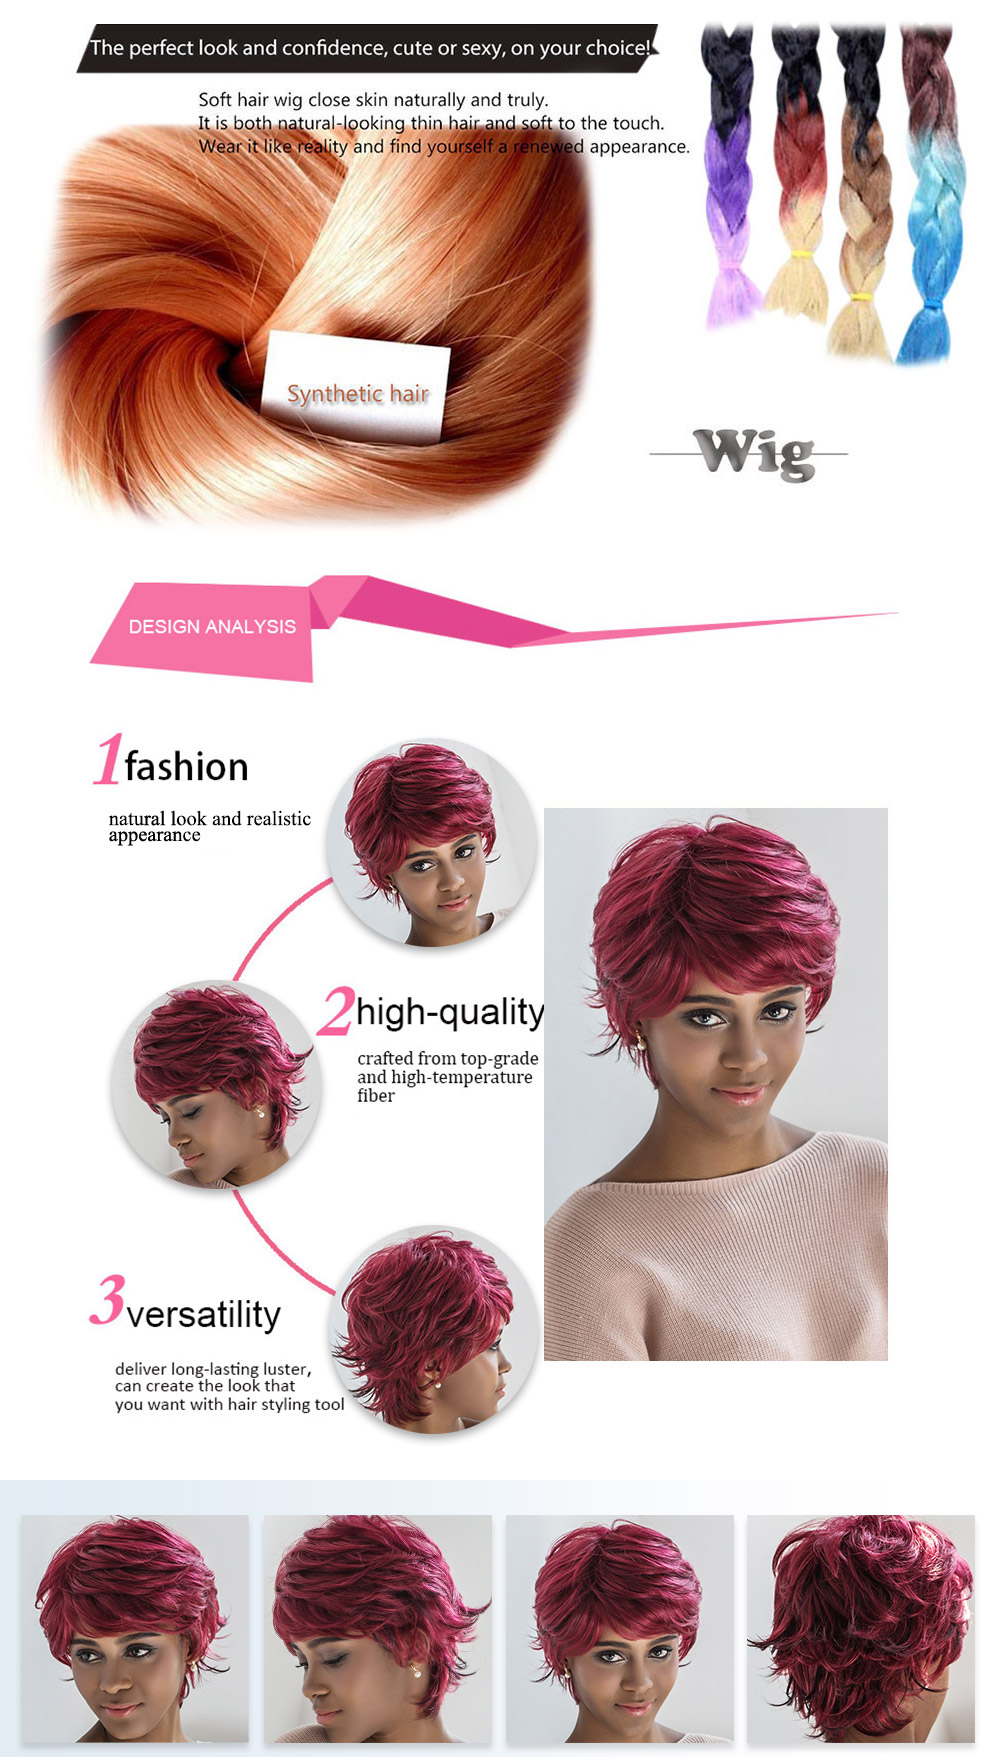 AISIHAIR Women Short Loose Curly Wine Red Side Bangs Synthetic Wigs Natural Dyeing Hair Style